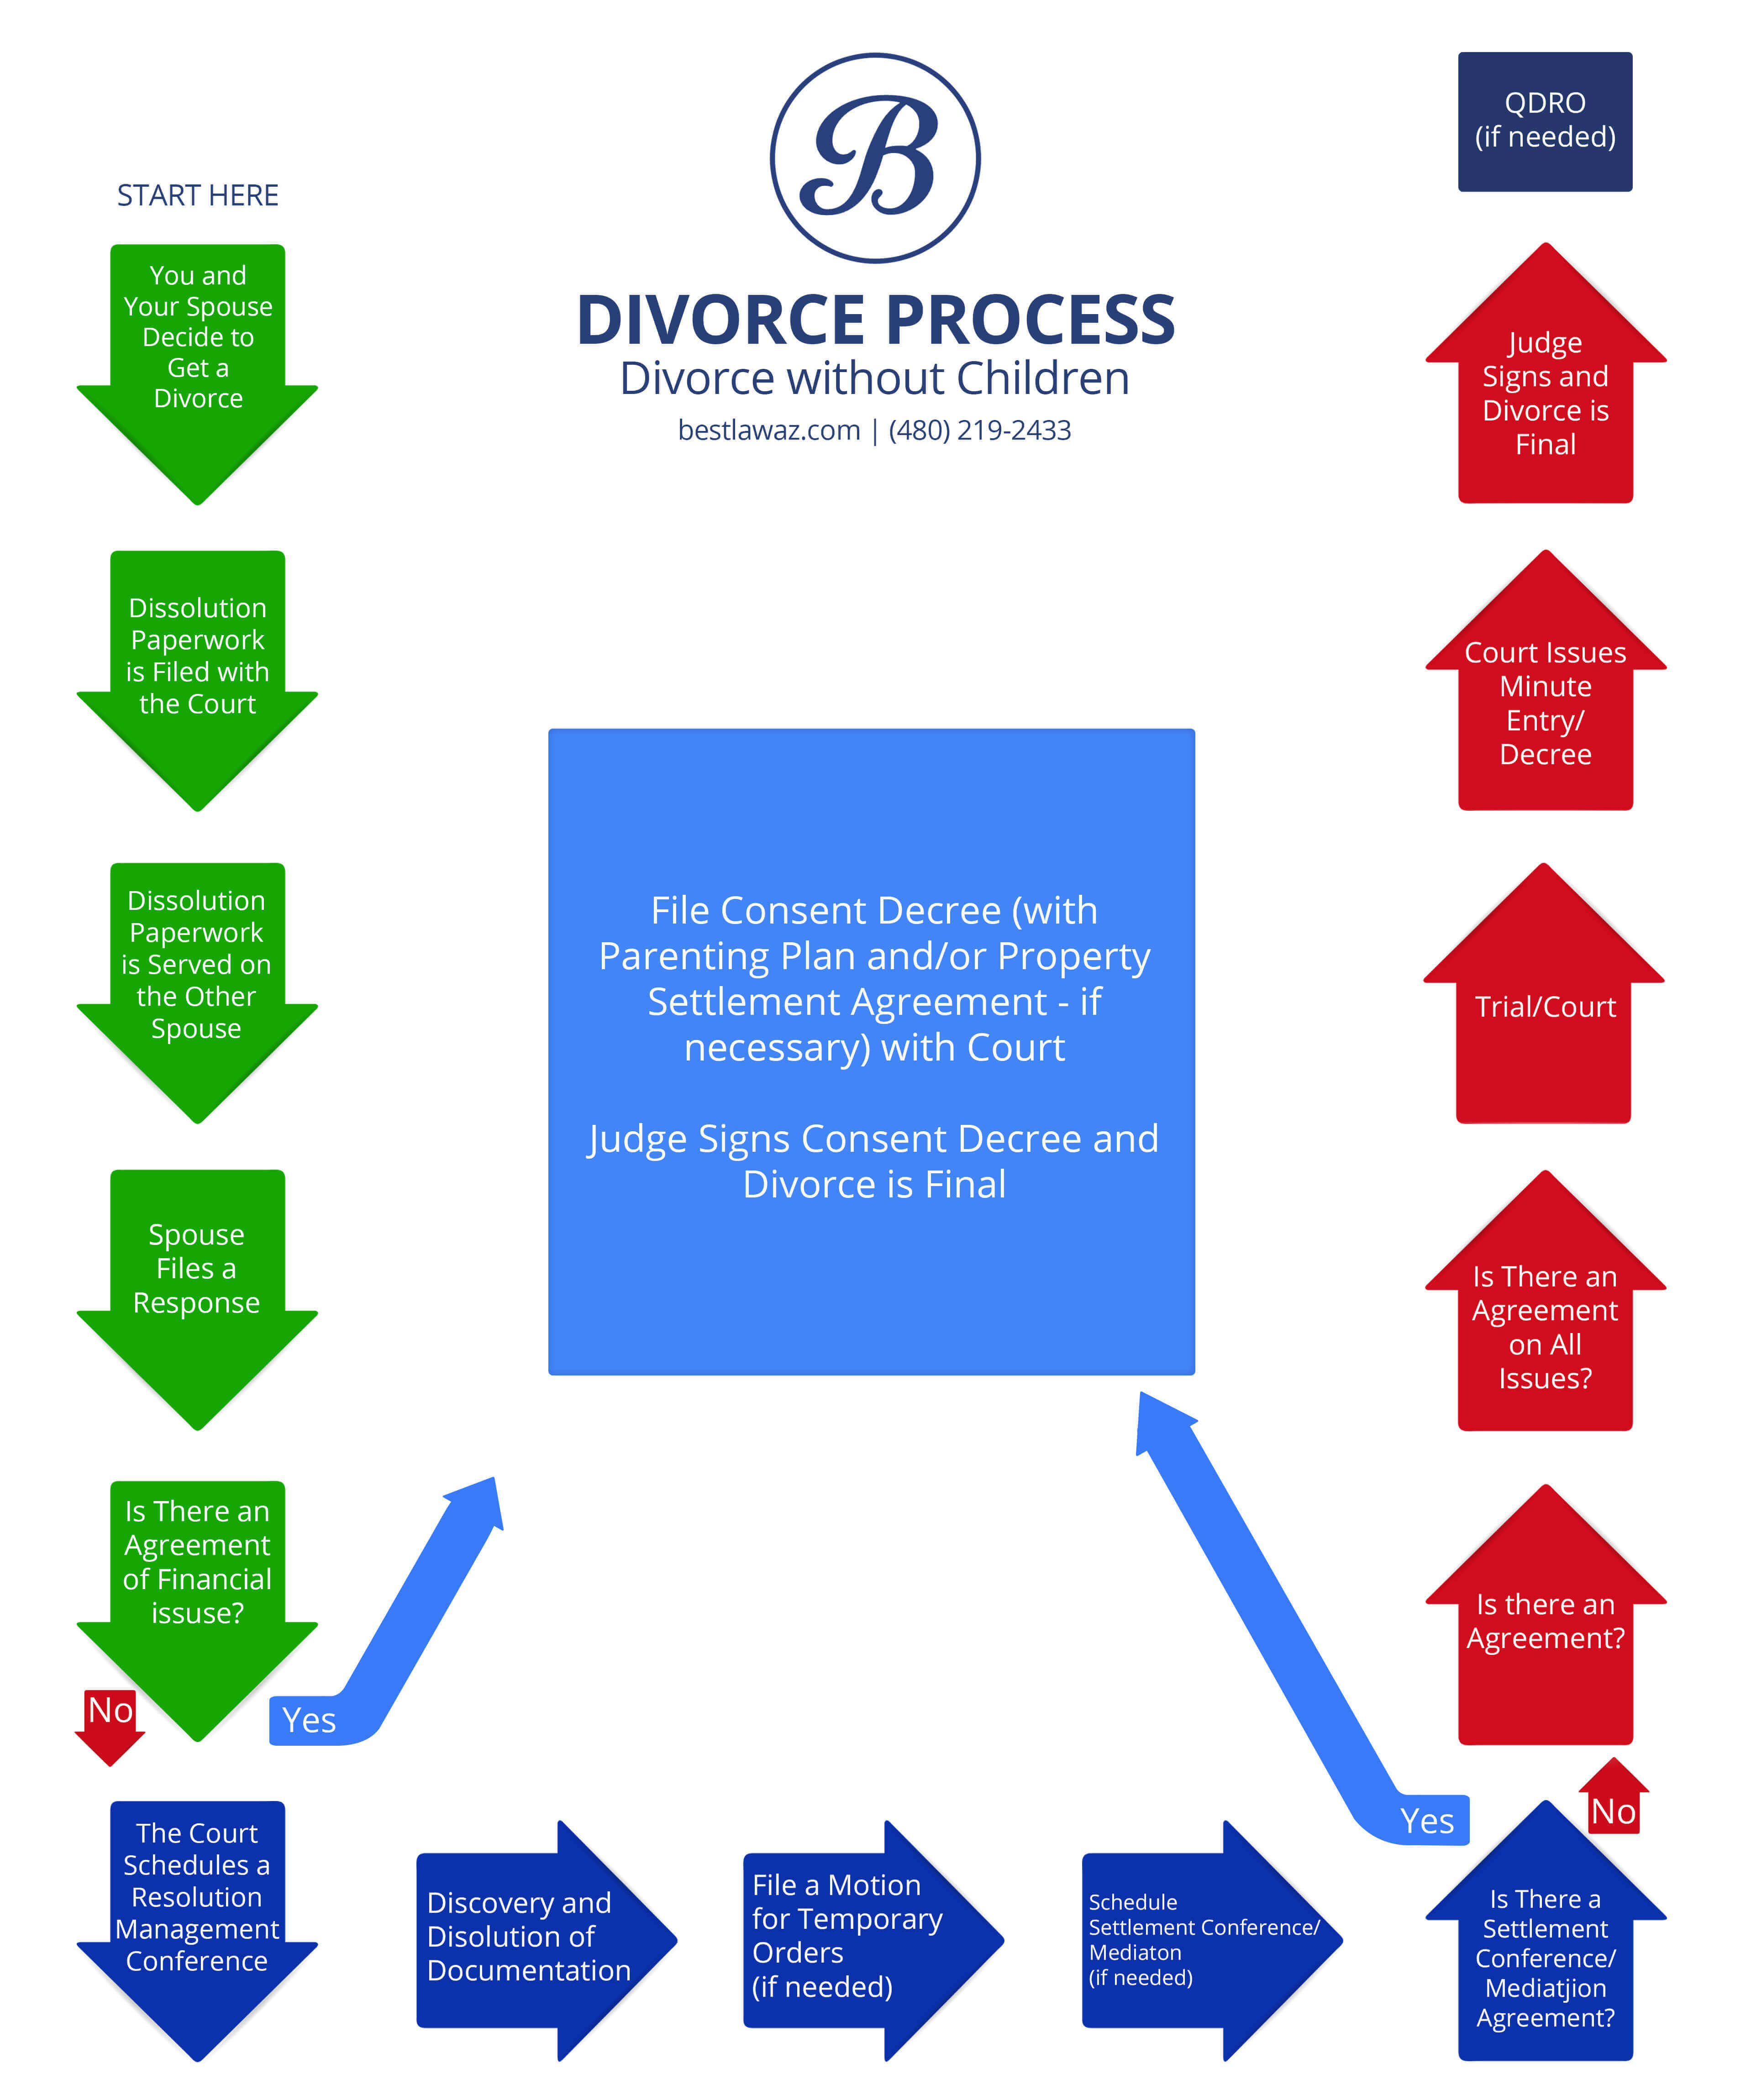 Divorce lawyers and attorneys in phoenix and scottsdale az click here to view the divorce process infographic solutioingenieria Gallery